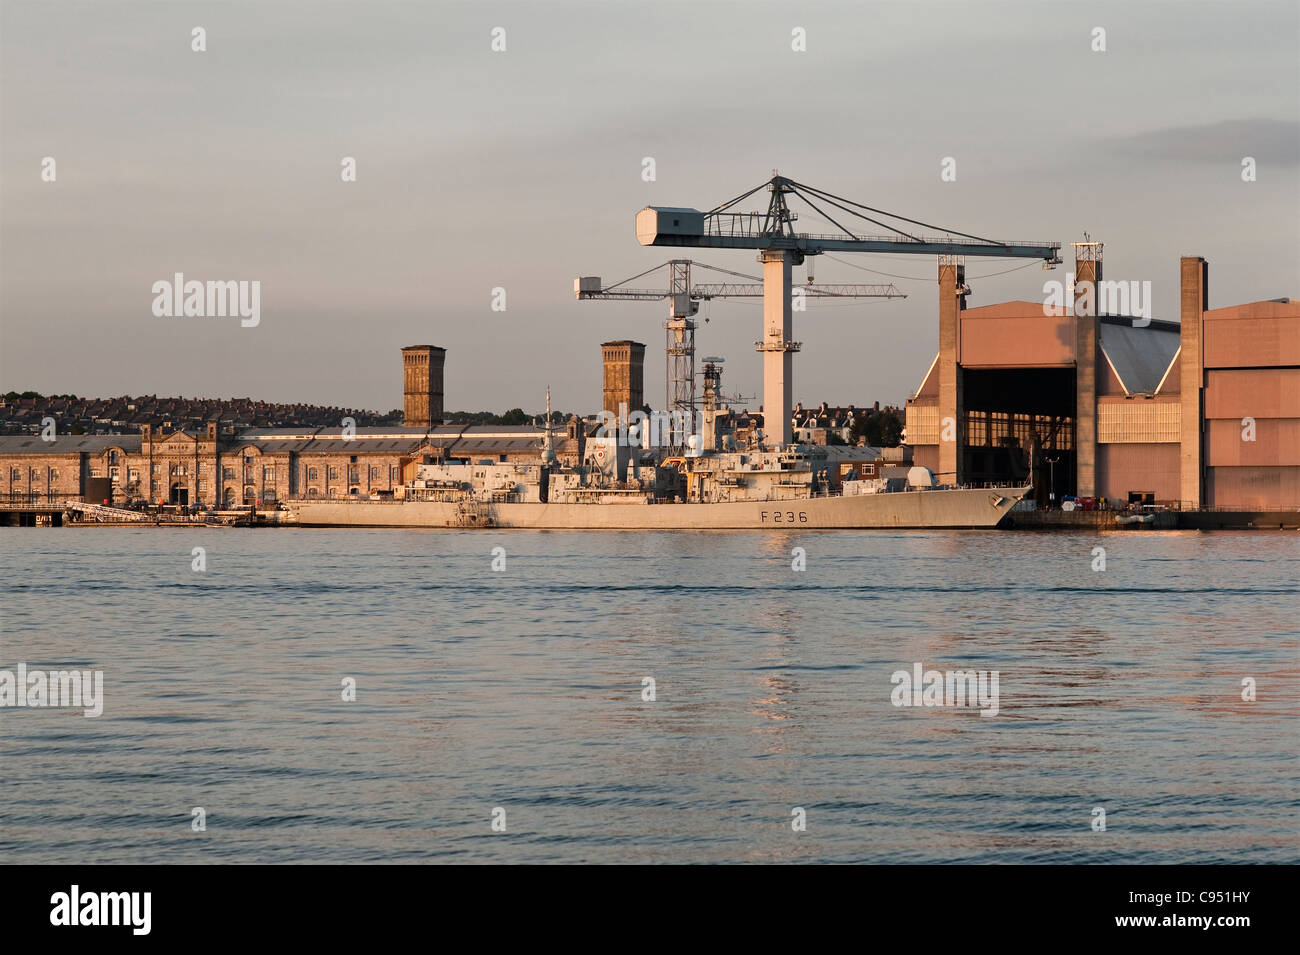 The Devonport Royal Dockyard, Plymouth, Devon, UK with HMS Montrose, a Type 23 frigate of the Royal Navy Stock Photo